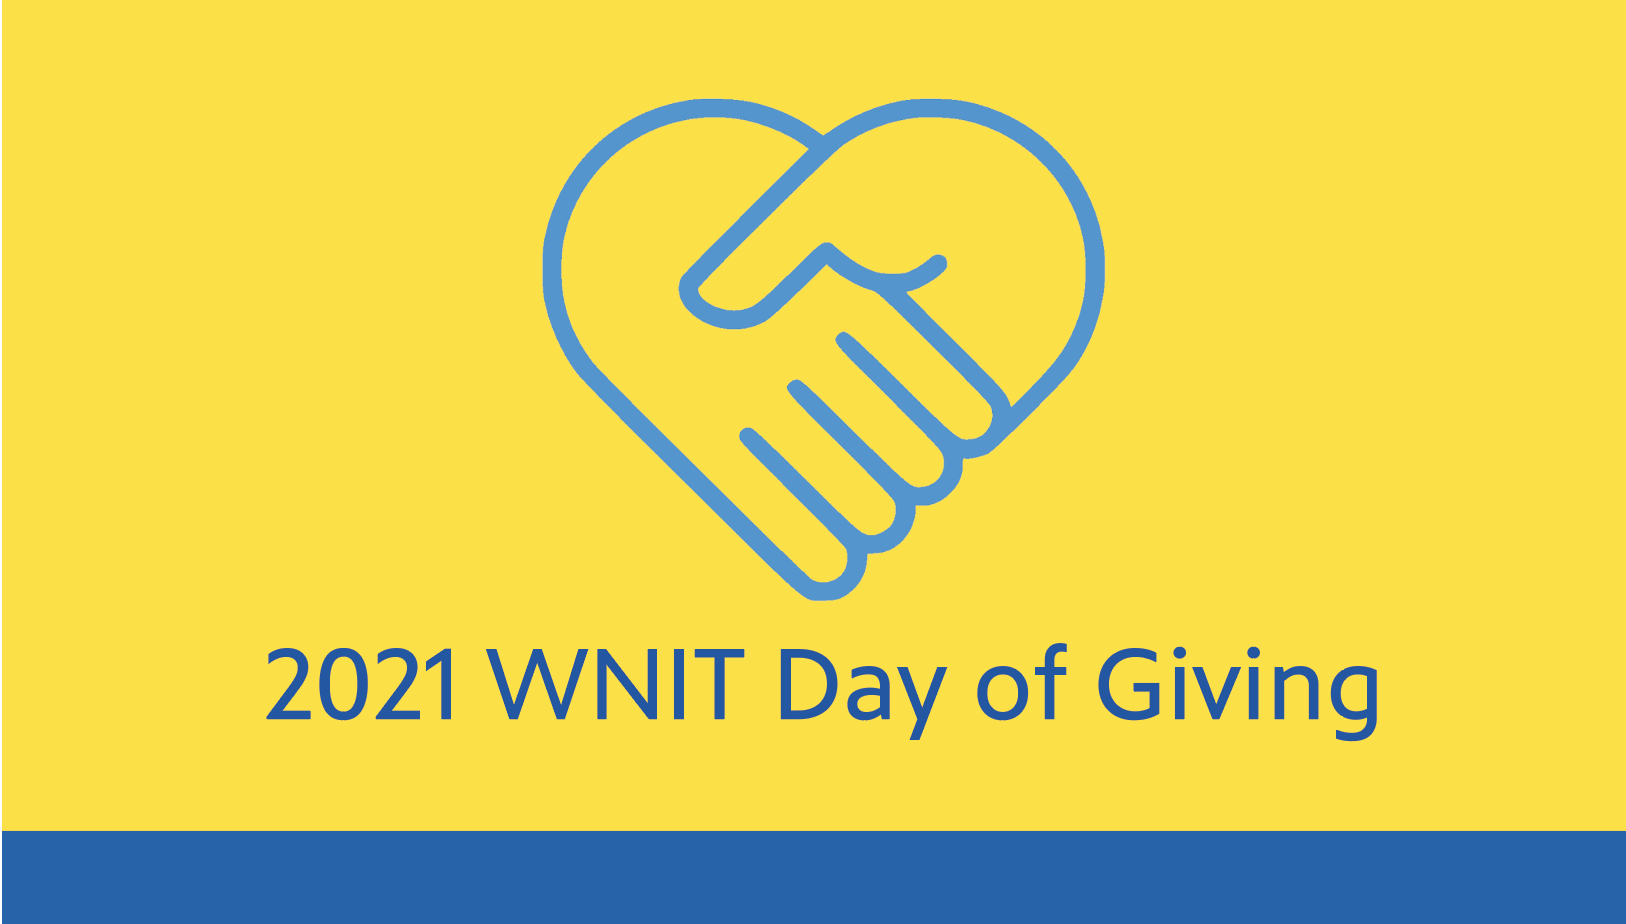 Thank You for making the 2021 WNIT Day of Giving a Huge Success Photo